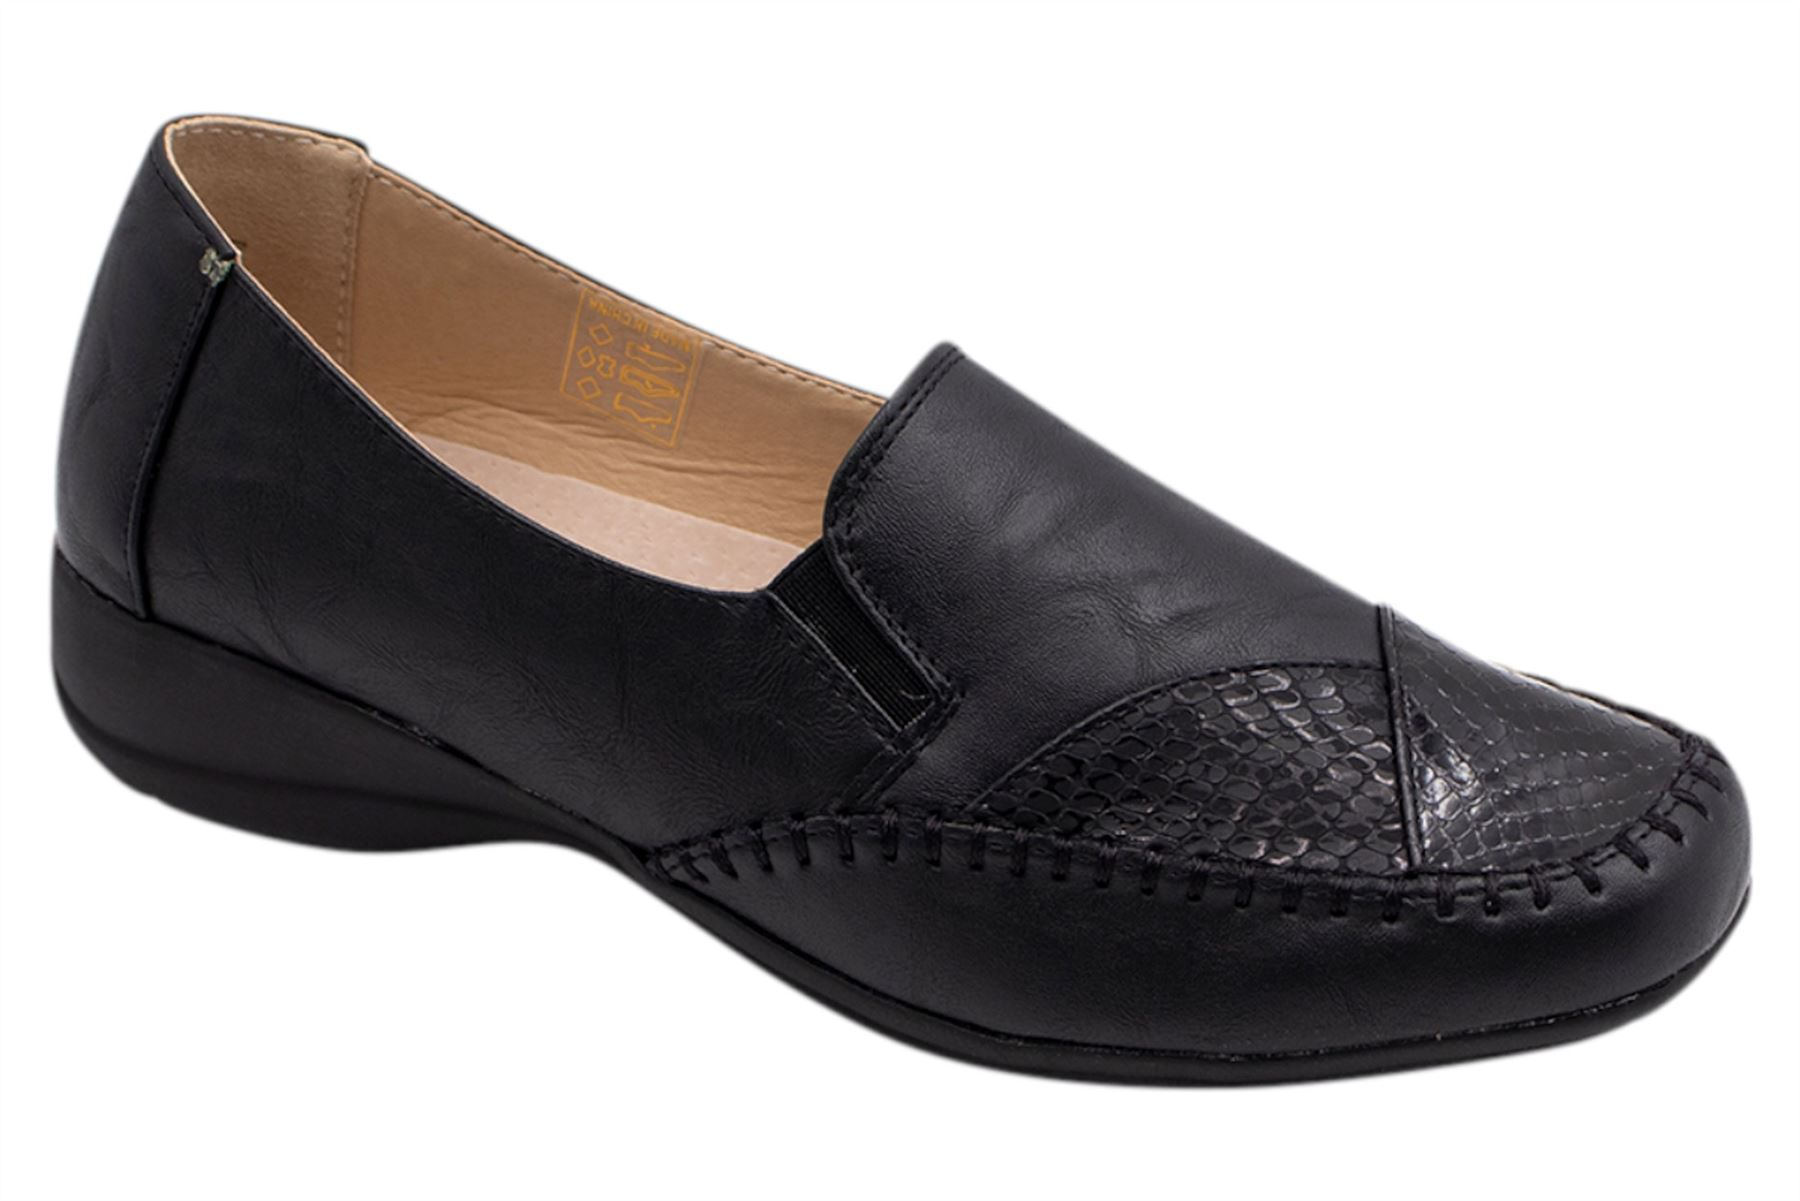 Ladies Flat Shoes Womens Pumps Office Work Casual Slip On Loafer Size